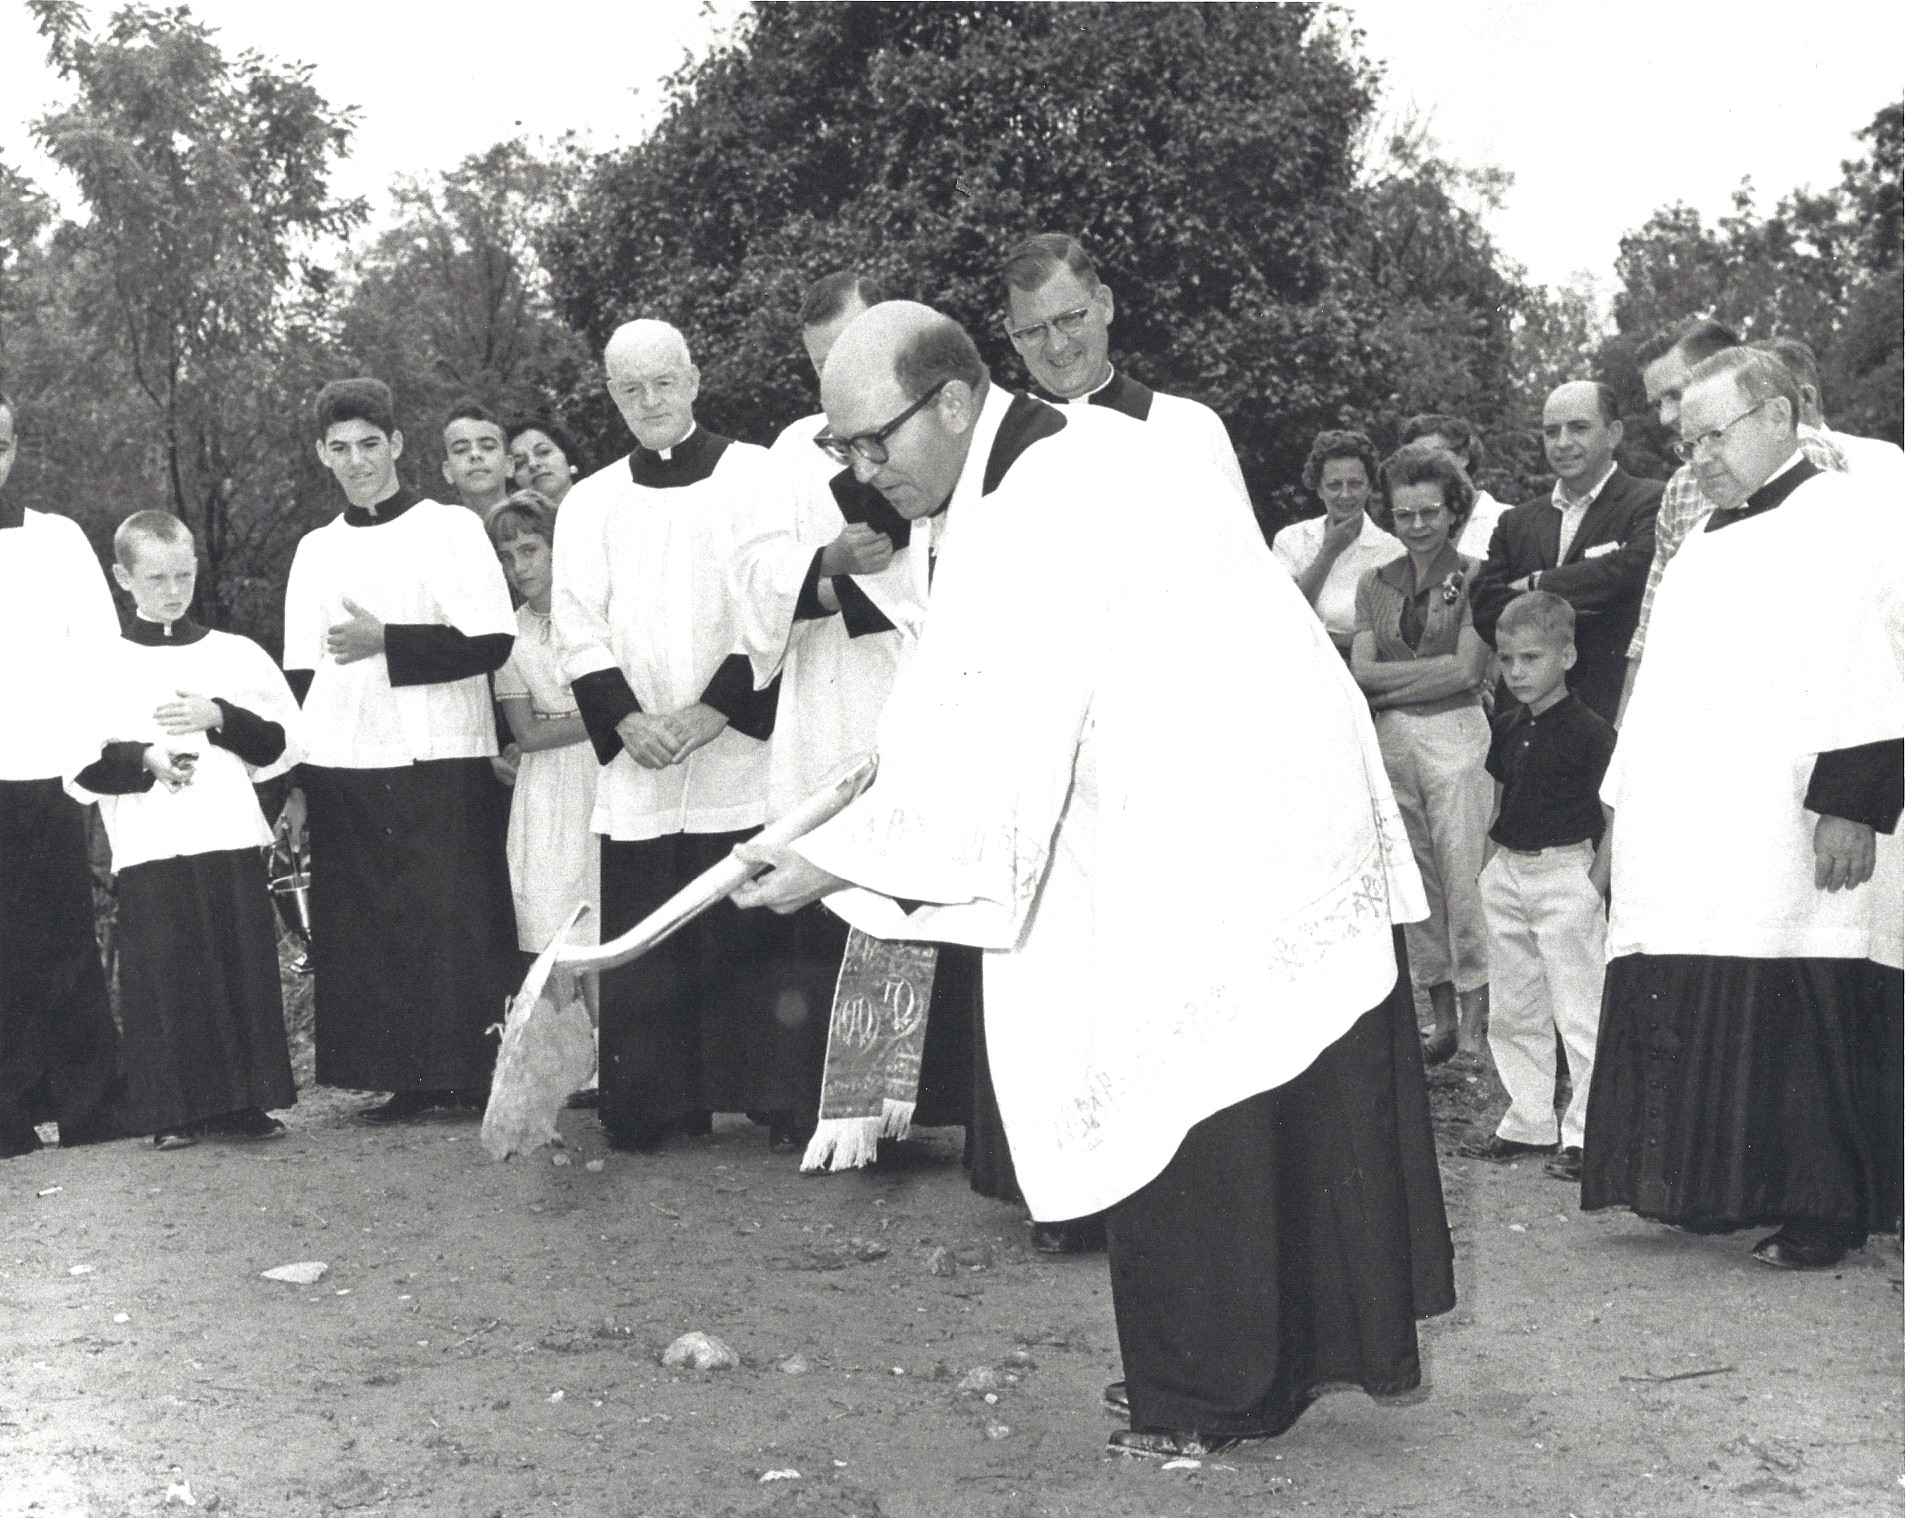 Father Winkler broke ground September 2, 1962, for St. Timothy's first and largest building. - The construction site was a hillside overlooking a meandering stream known as Turkey Run.